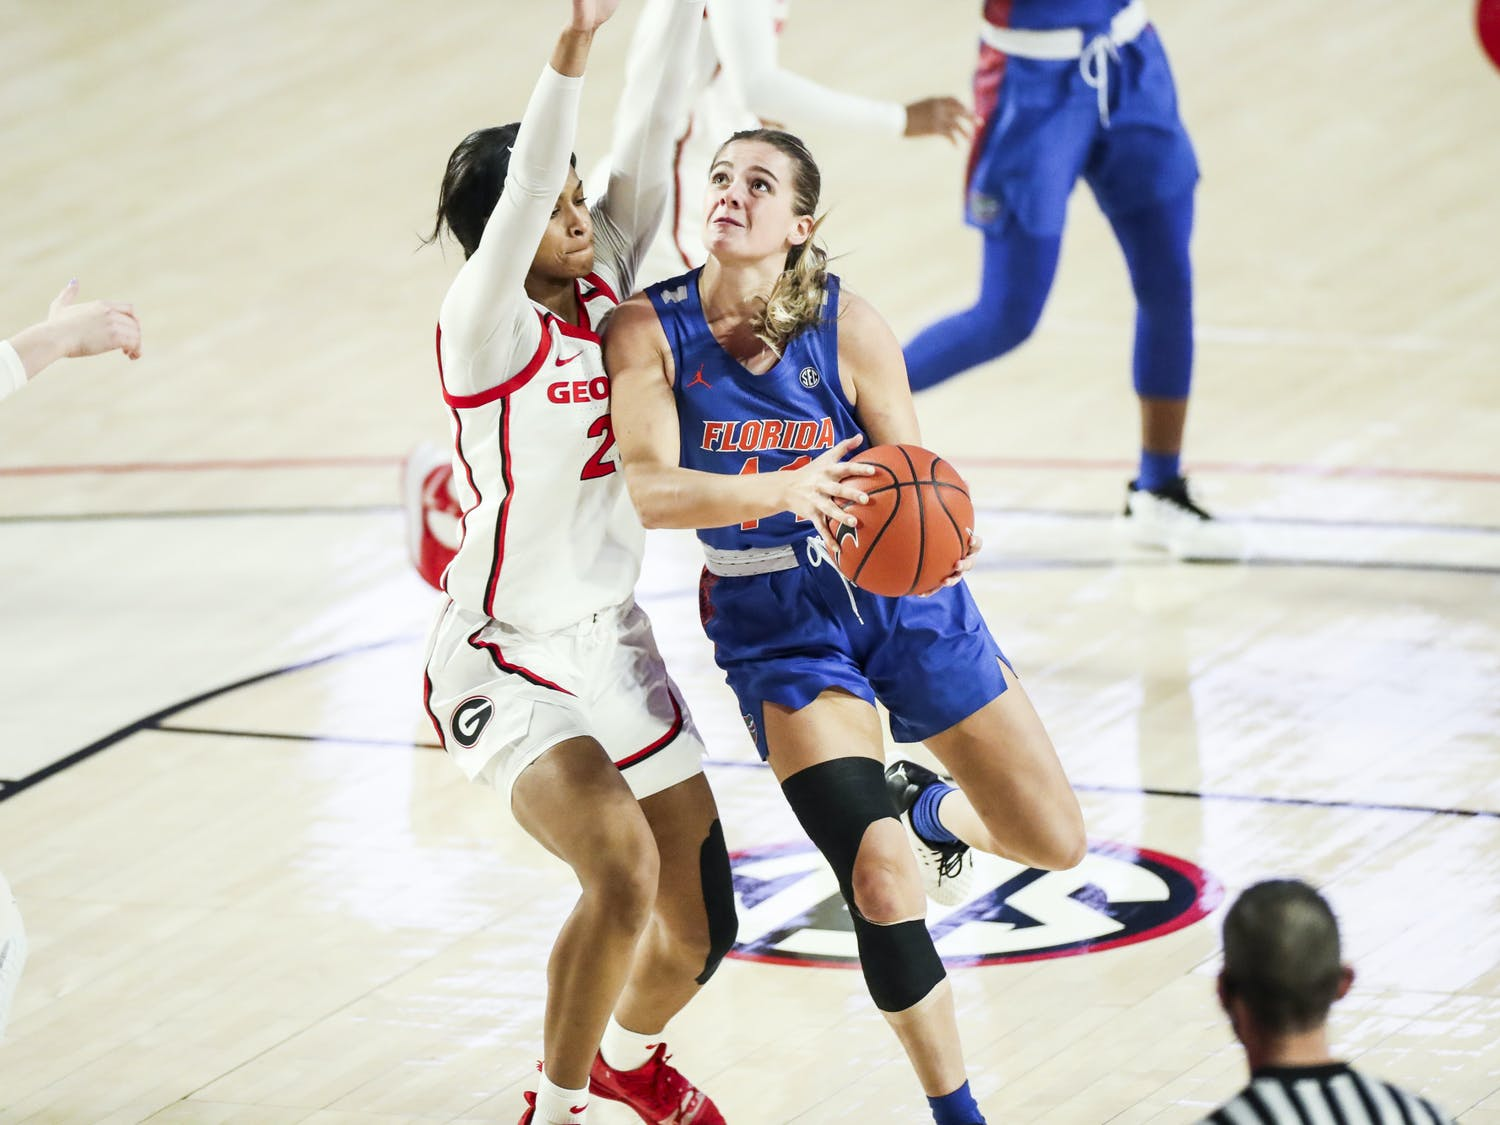 Gators guard Kristina Moore was energetic at Sunday's game against Georgia, making 11 points. Photo courtesy of the SEC Media Portal.